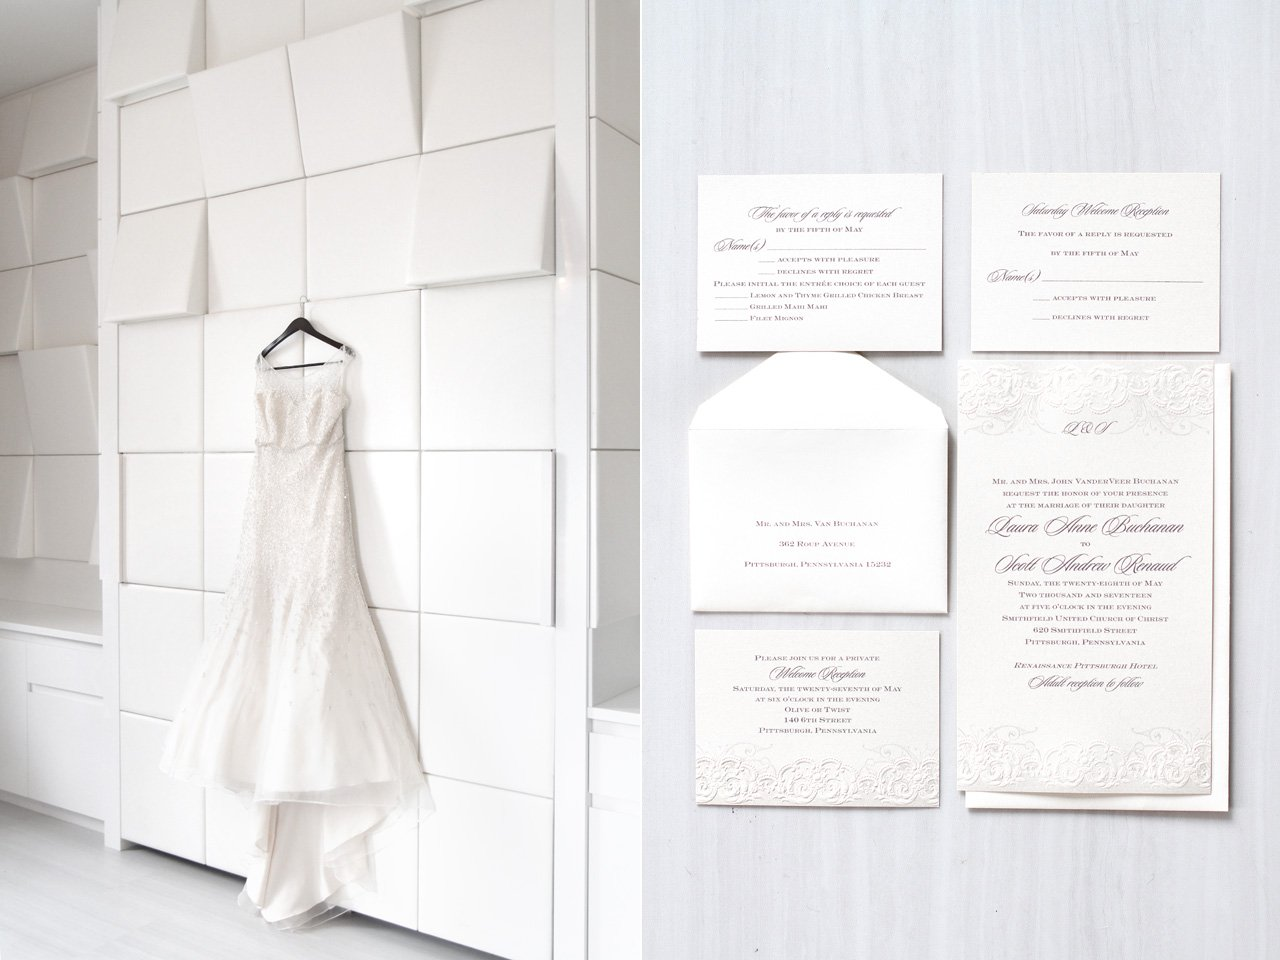 wedding gown invitations